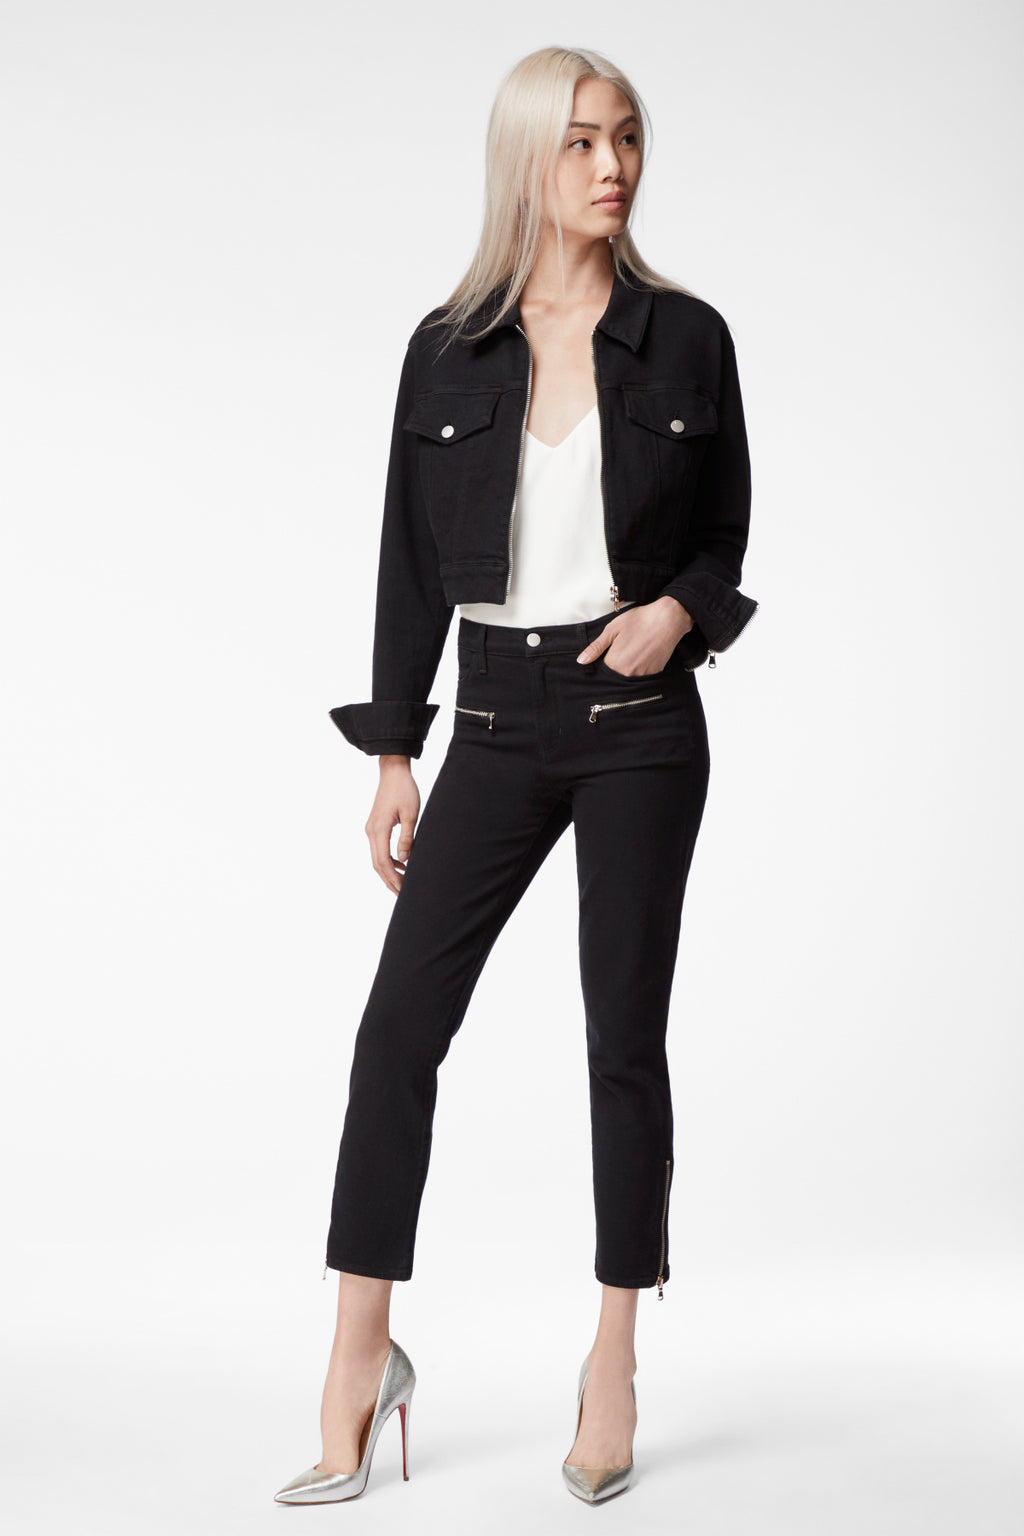 J BRAND - Moto Ruby High Rise Cropped Pants online at PAYA boutique